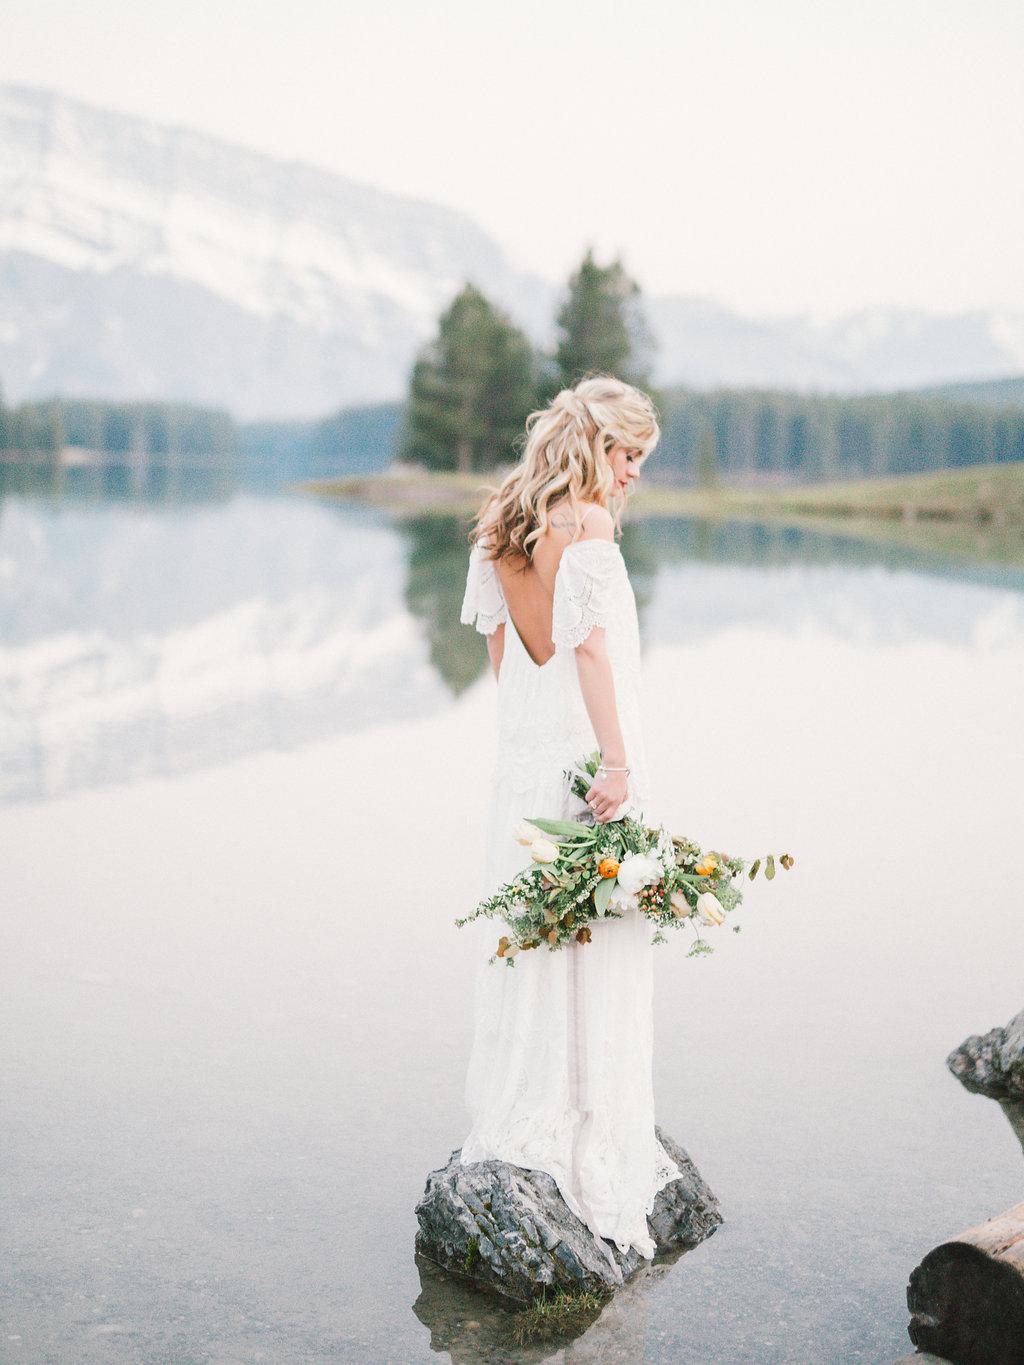 Photos by Julia Park Photography and Cinema  Imagine an adventurous bride spending her free time hiking in the mountains and camping by the bonfire. Her bouquet inspired by wildflowers, the ones the couple were admiring on their first hike together. This Canadian bride is featured in print on the cover of Rocky Mountain Bride Magazine across the U.S. and Canada.